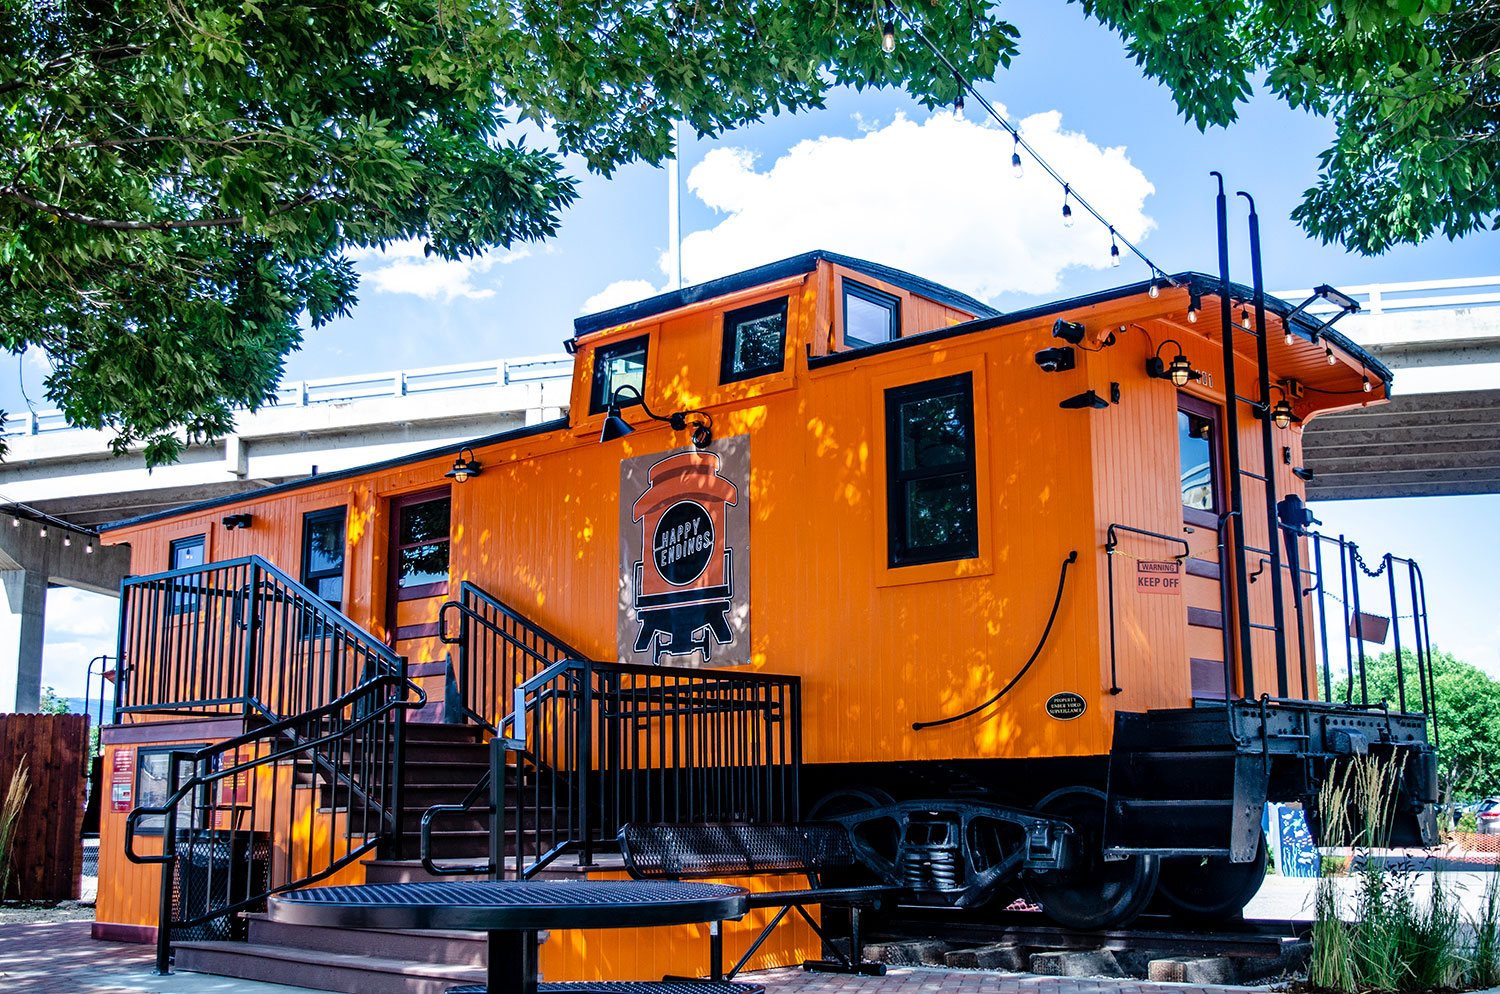 Happy Endings Caboose Cafe open daily at 8 a.m.